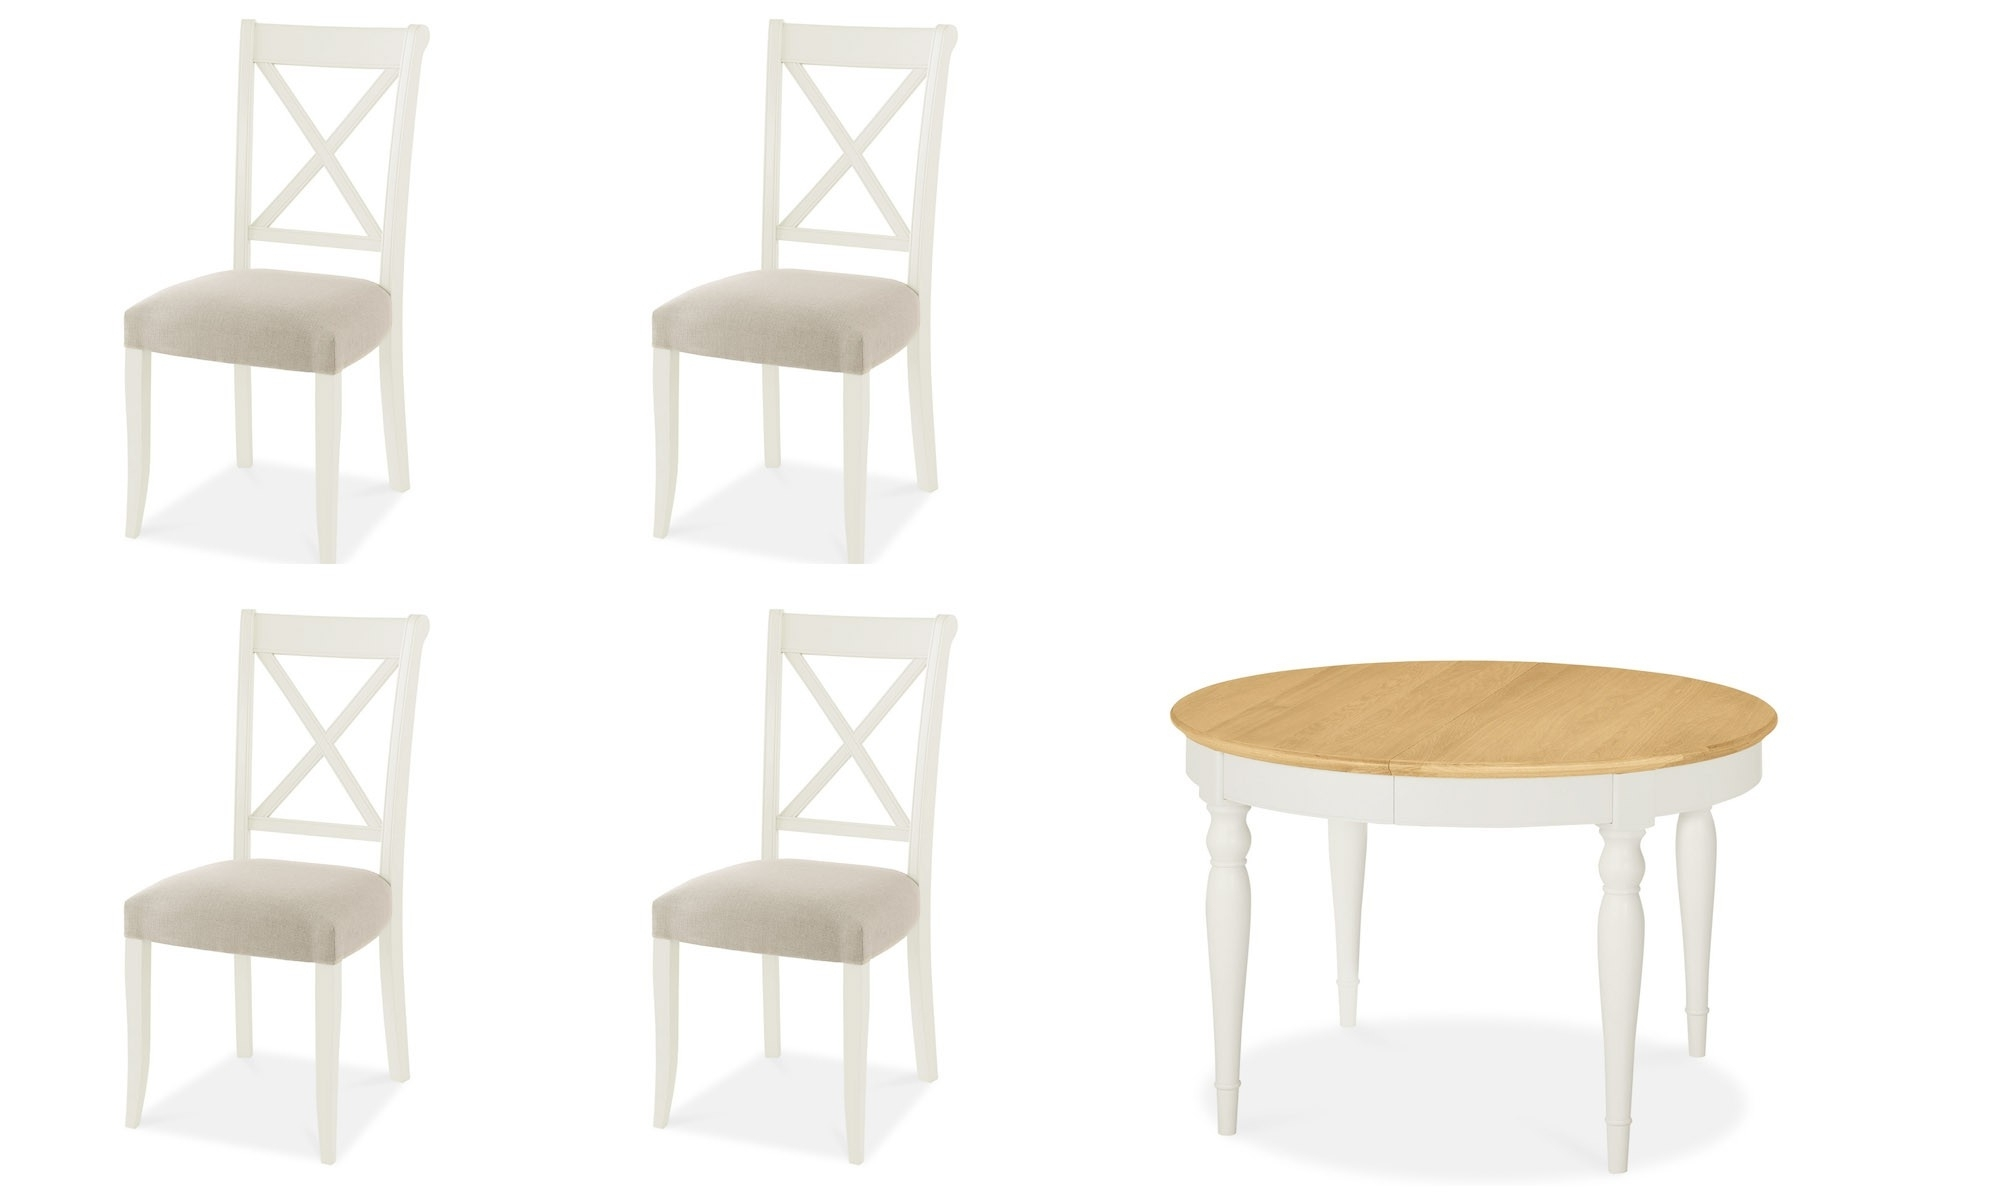 Georgie – Round Extending Dining Table And Chairs In Cream – Oak Top With Regard To Most Up To Date Cream And Wood Dining Tables (View 7 of 25)